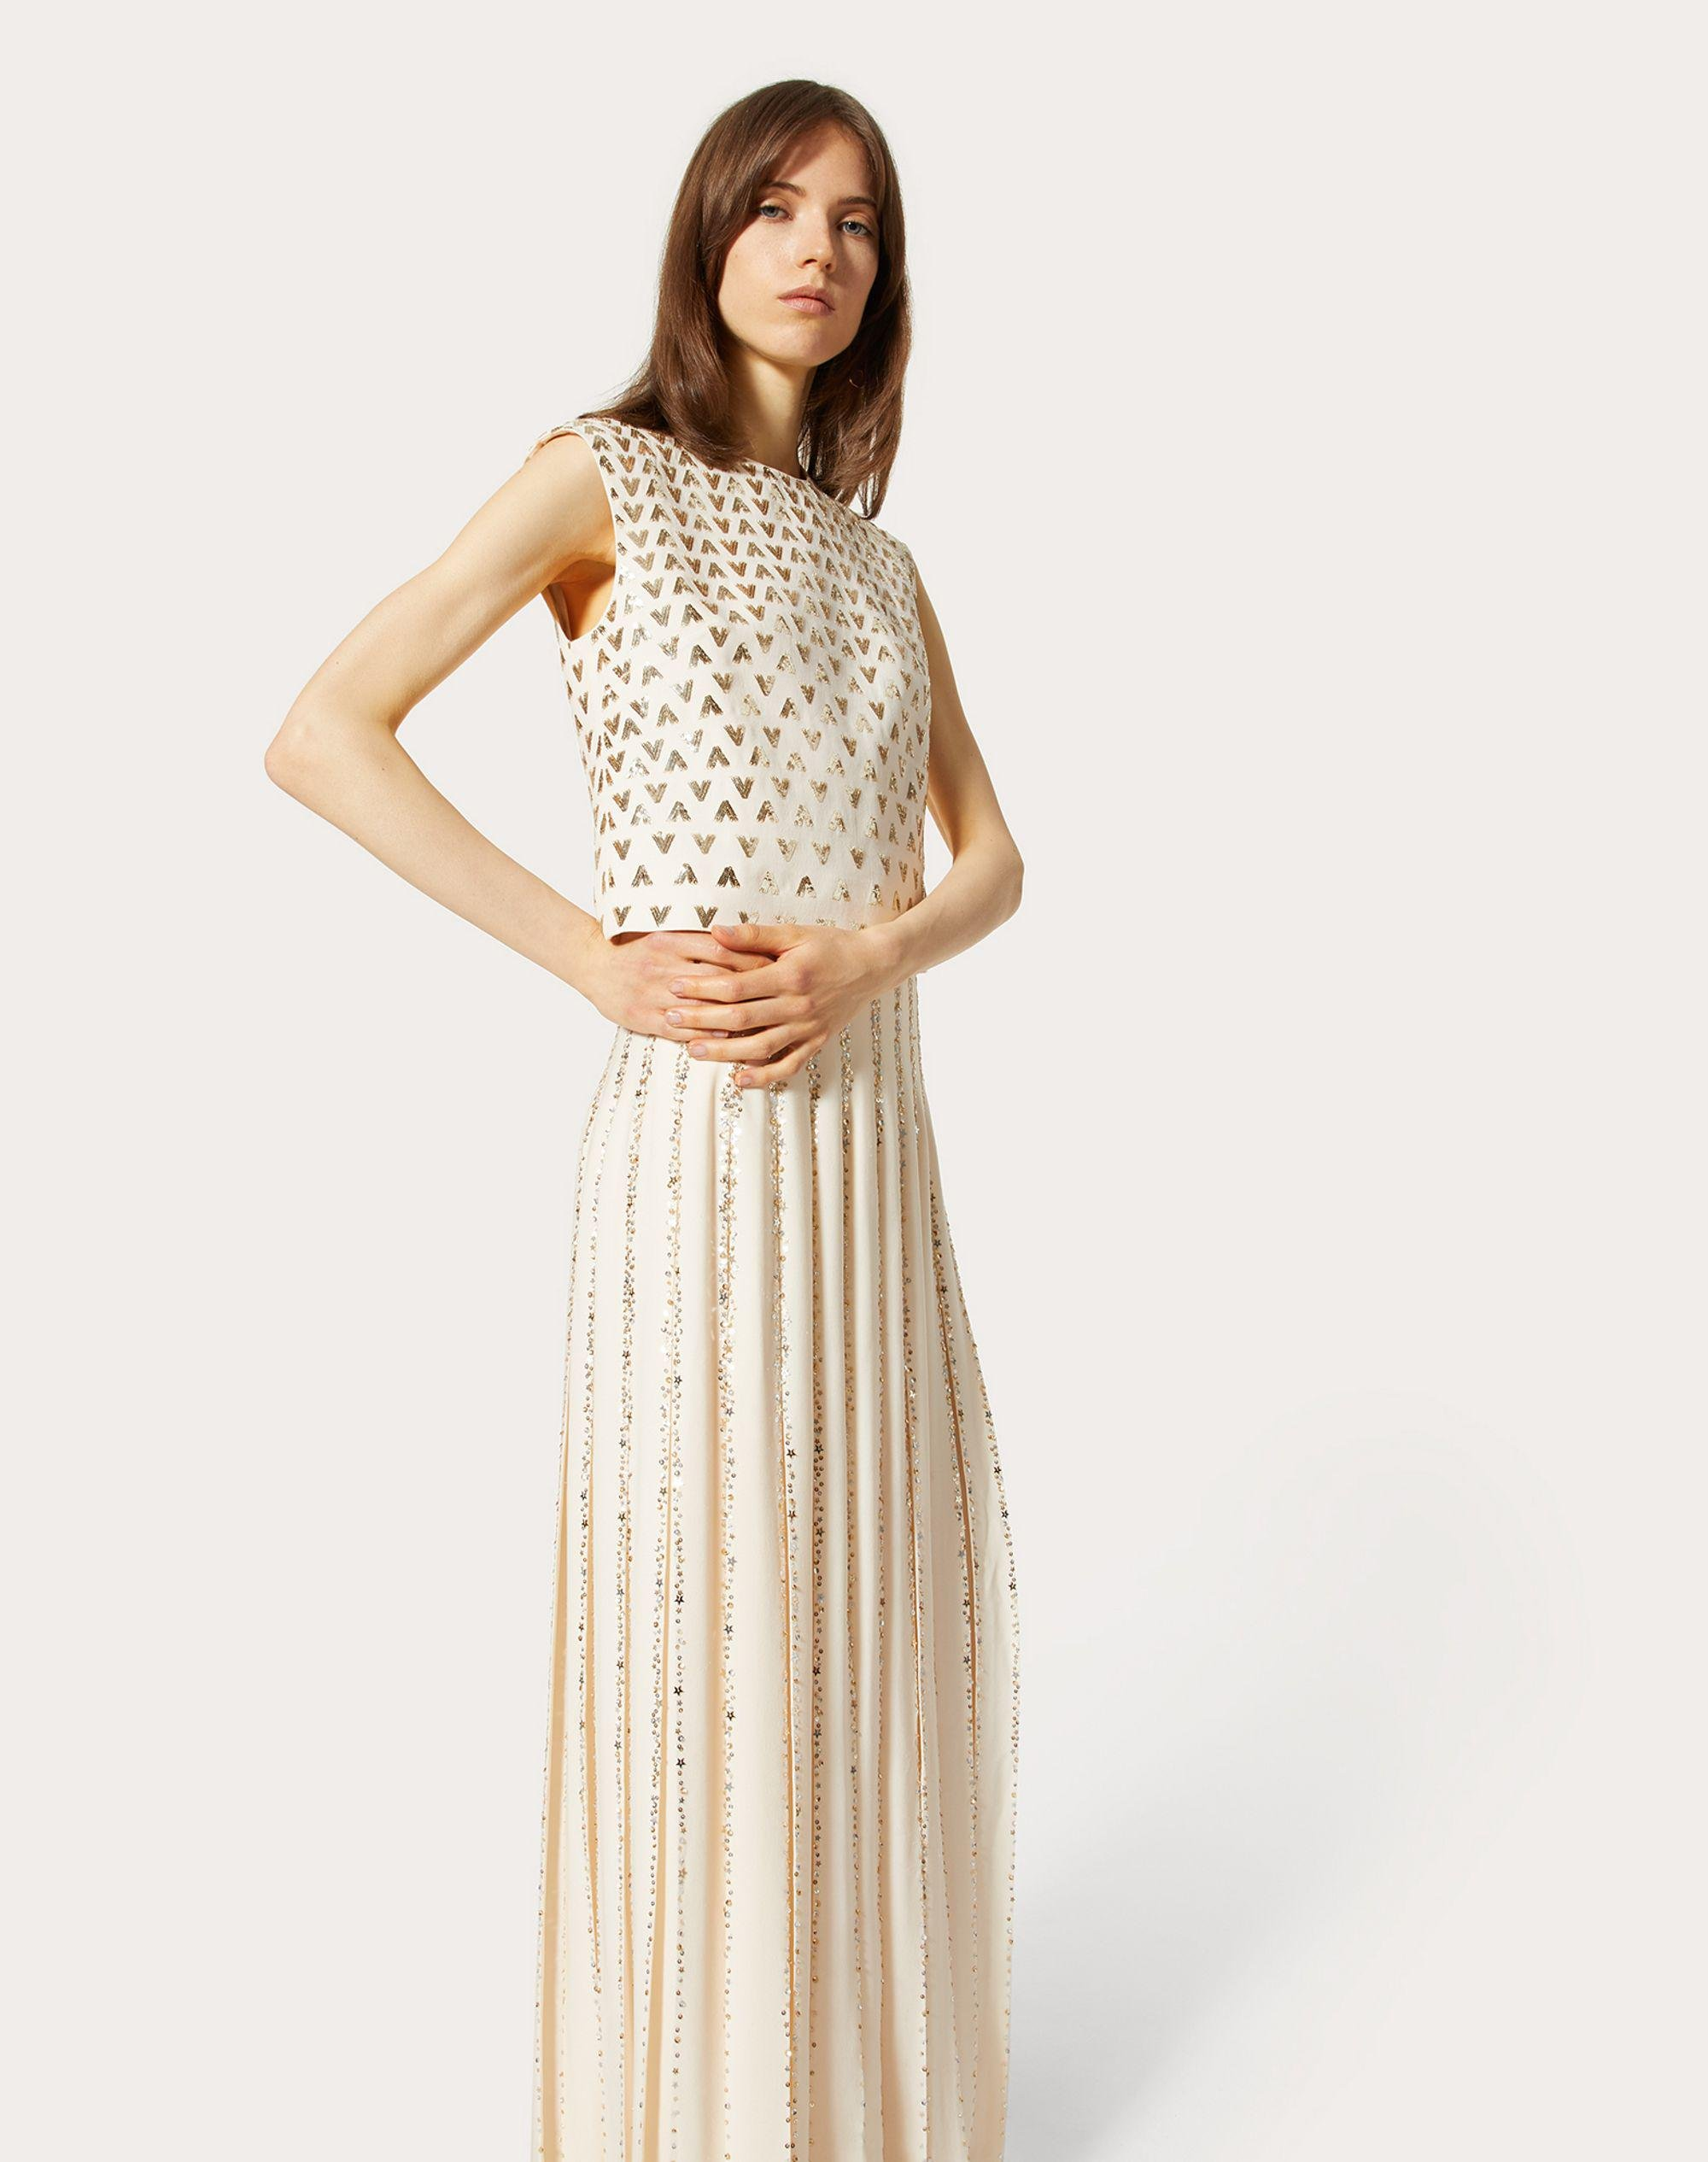 EMBROIDERED GEORGETTE EVENING DRESS 3